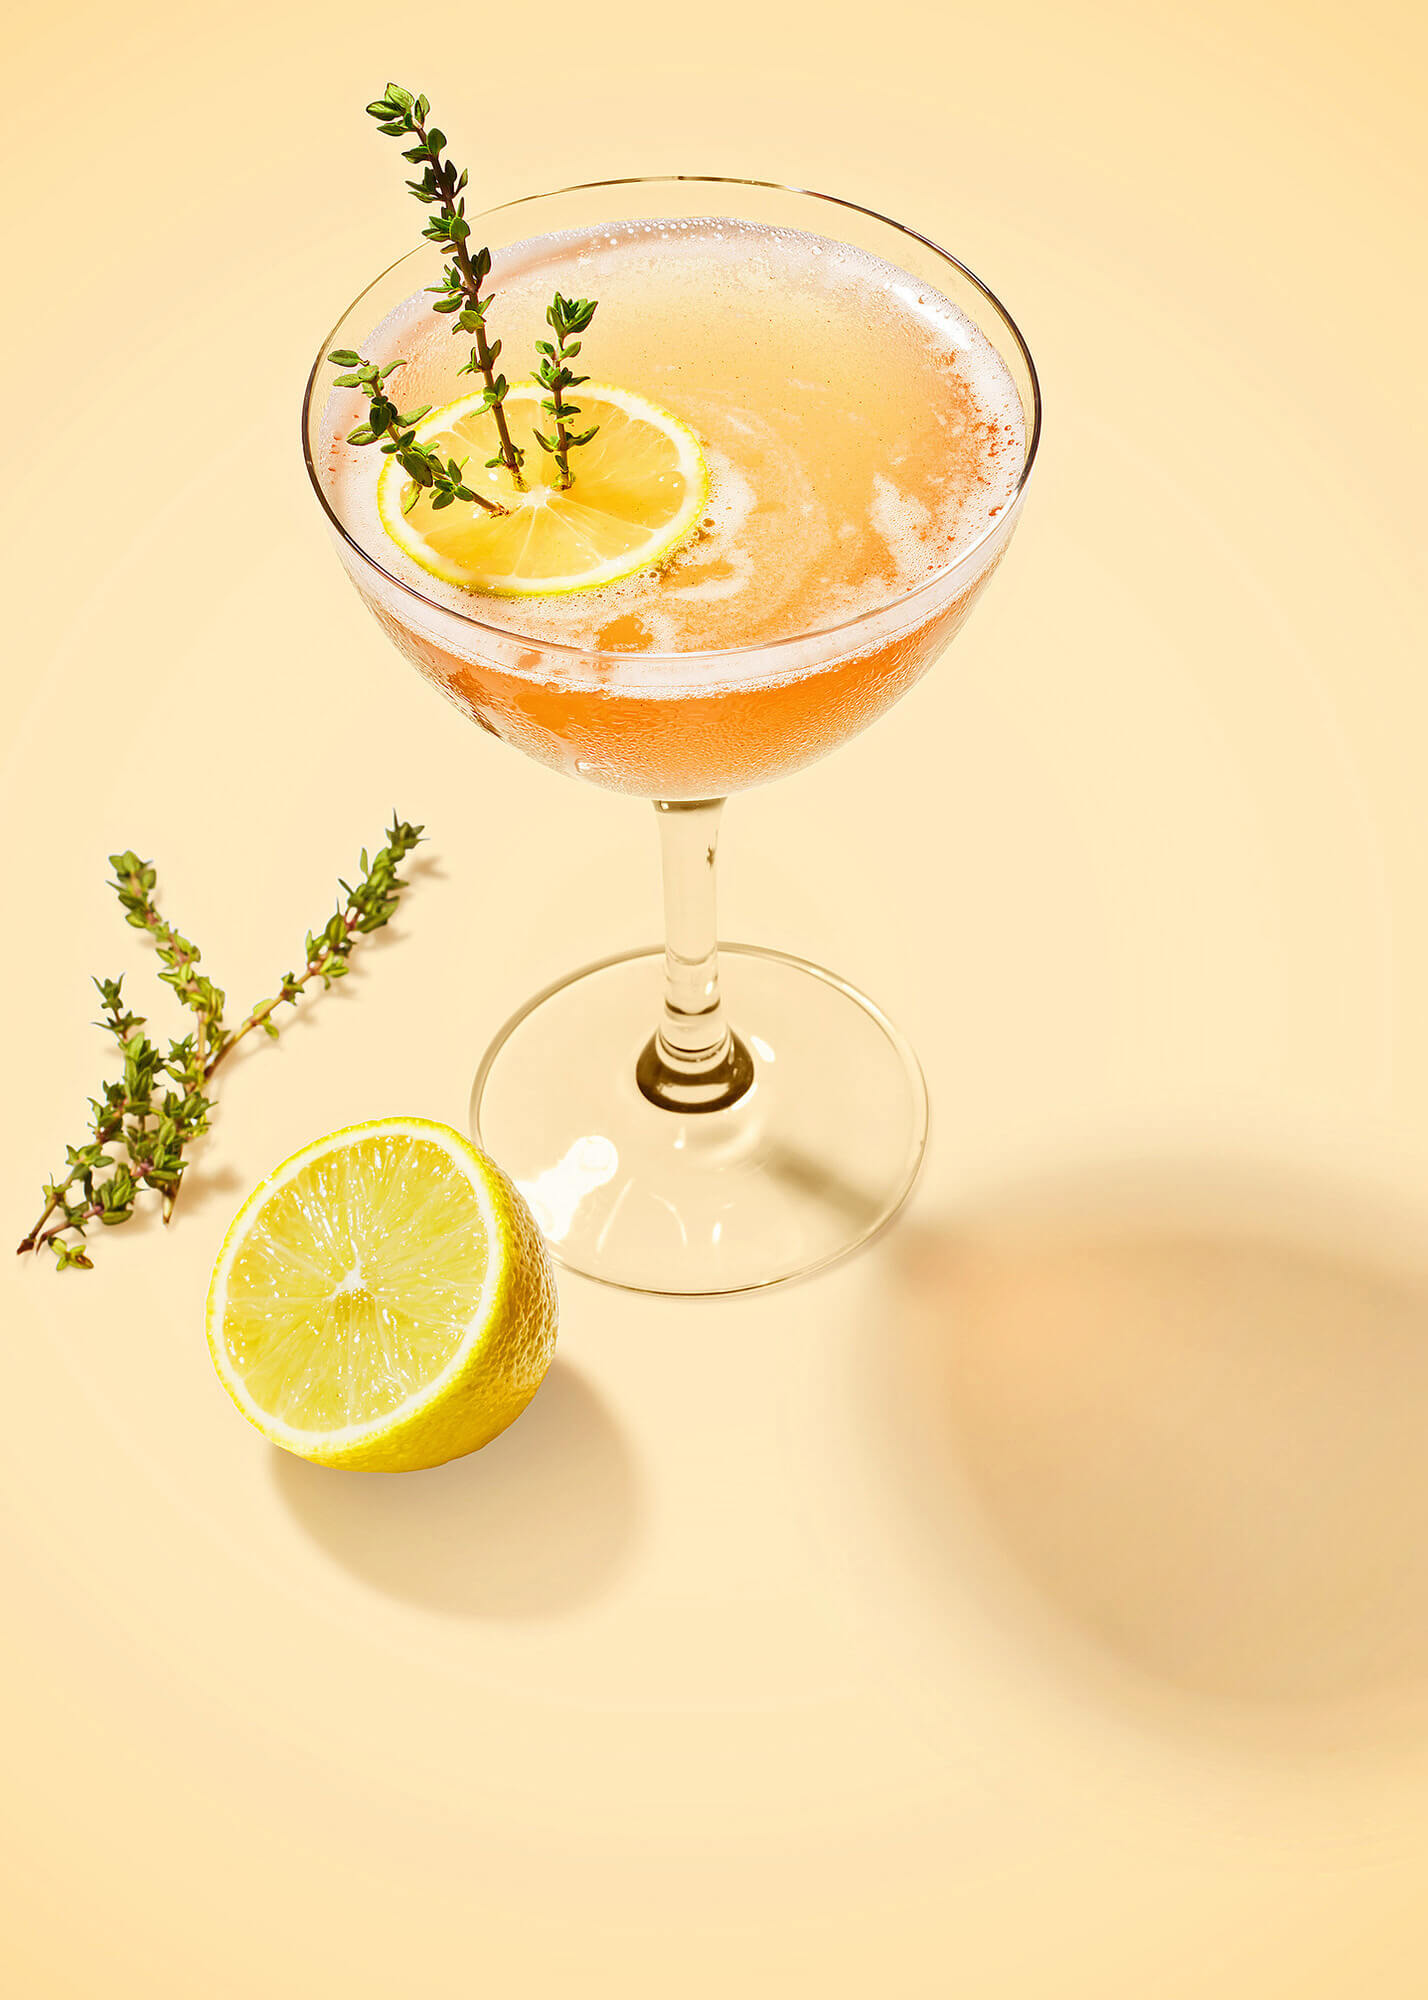 Gin cocktail with lemon garnish